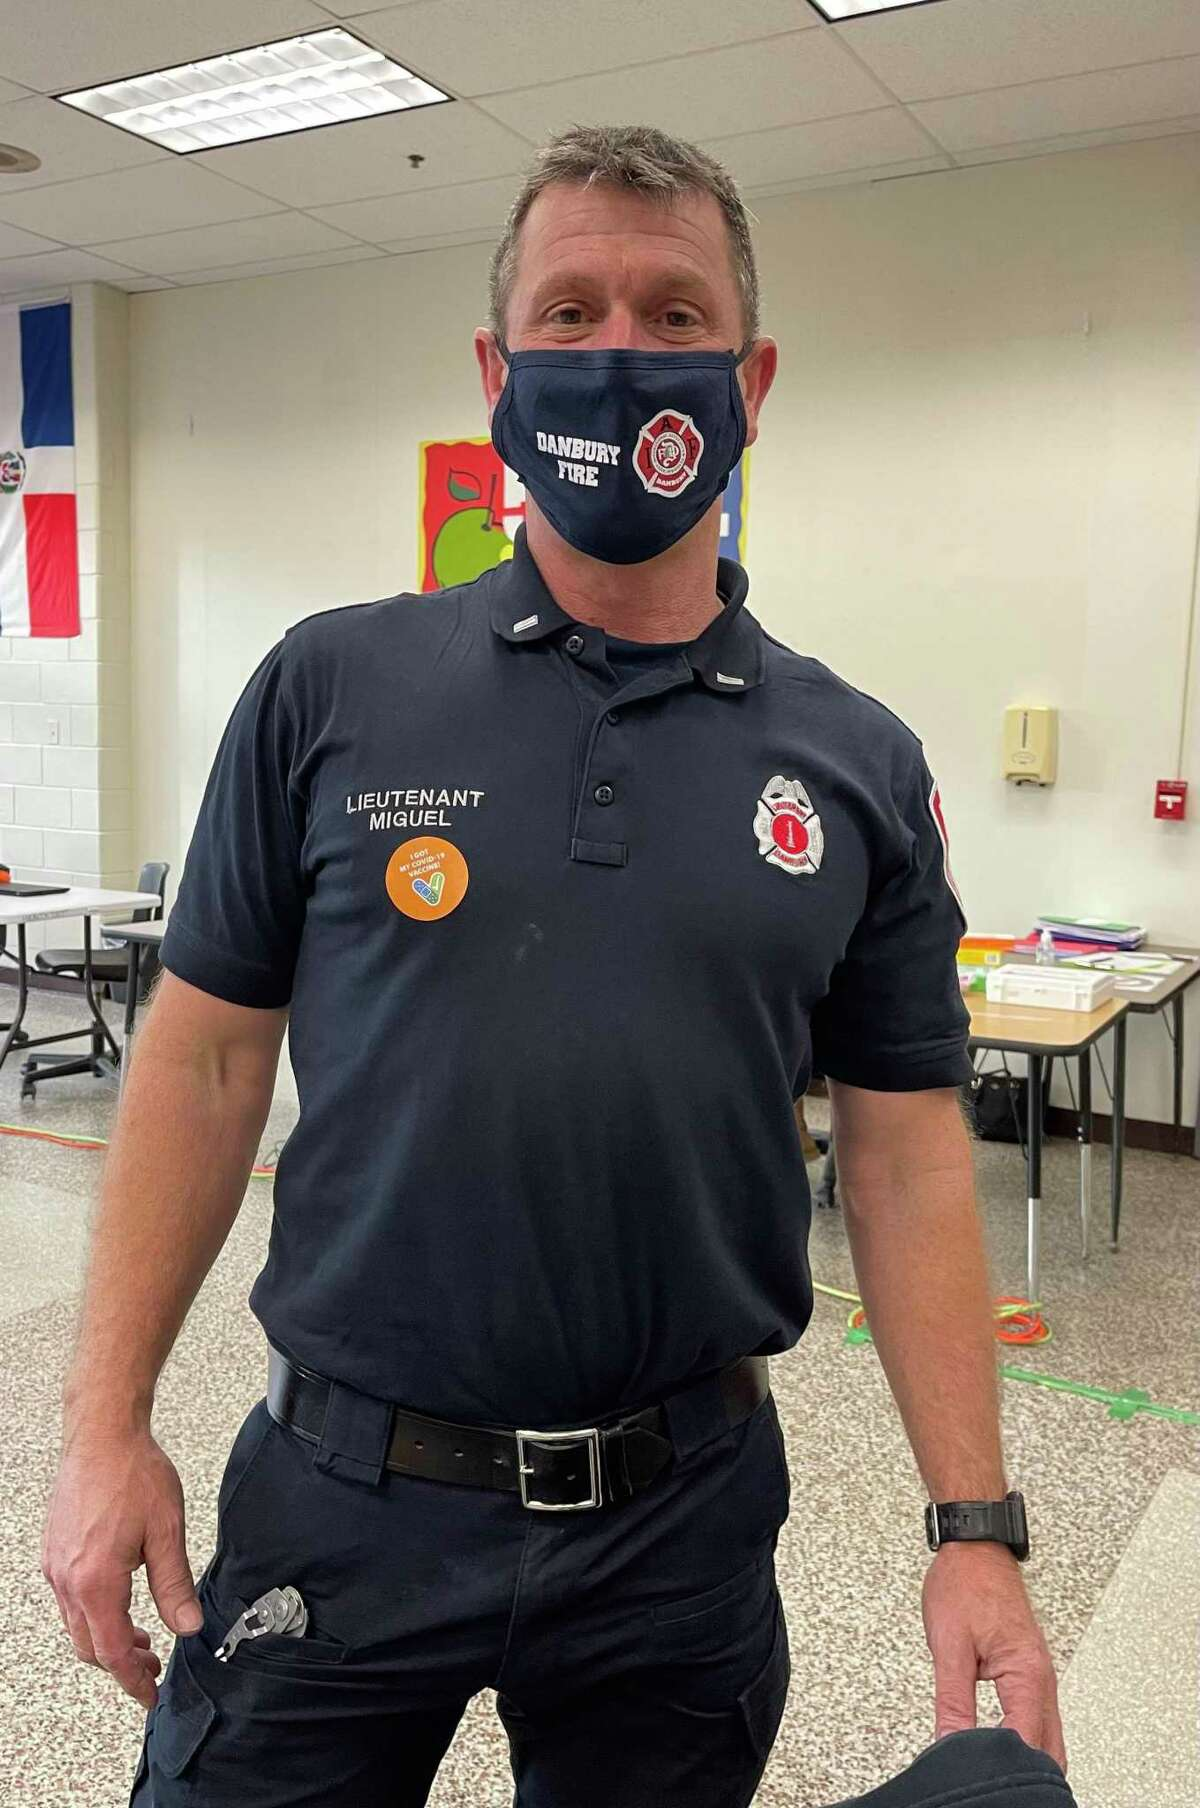 Danbury fire Lt. Mark Miguel received the Moderna COVID vaccine on Wednesday, Dec 30, 2020. The Danbury Health Department administered 300 COVID vaccines over the course of a week to health care workers and first responders.